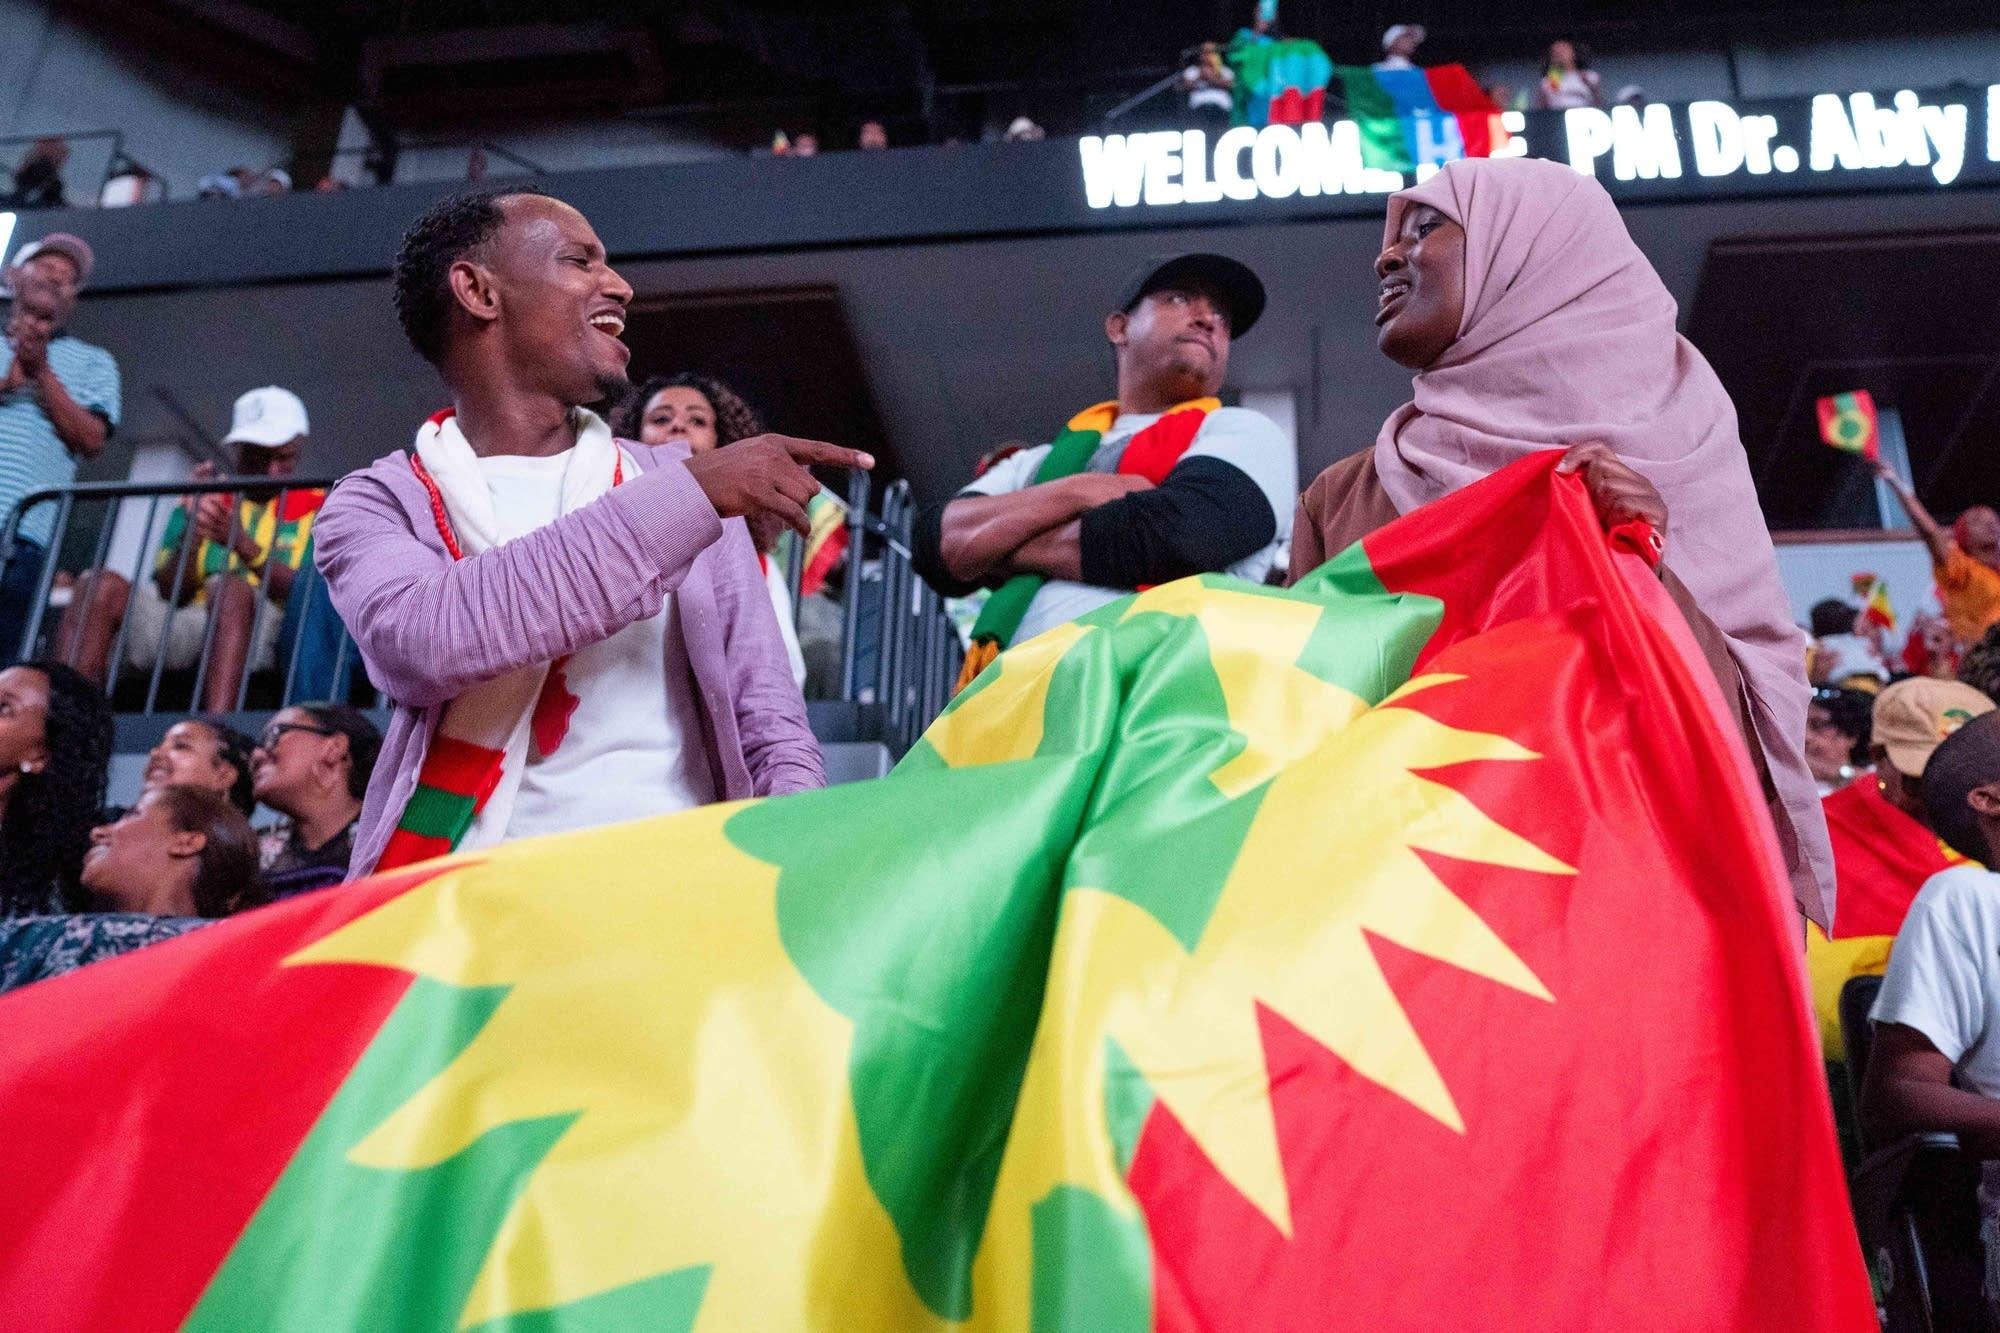 Two attendees dance with the flag of the Oromo people.